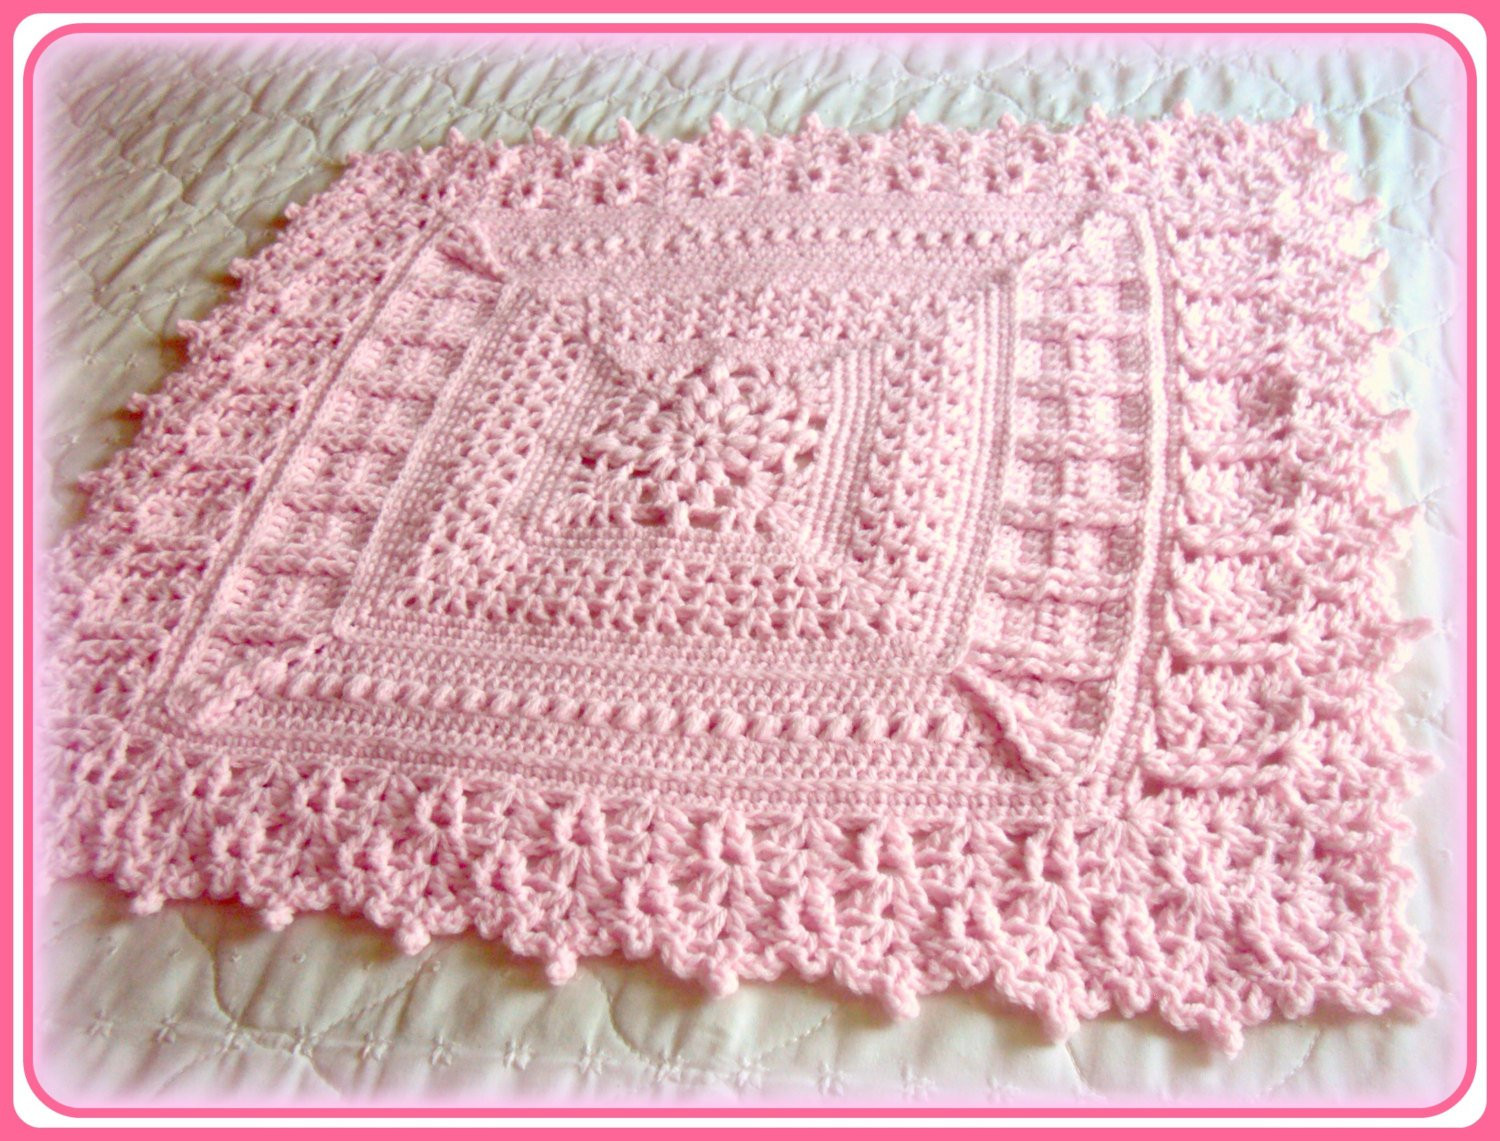 Crochet Patterns for Baby Blankets Unique Pinterest Shawl Crochet Pattern Of Great 50 Photos Crochet Patterns for Baby Blankets